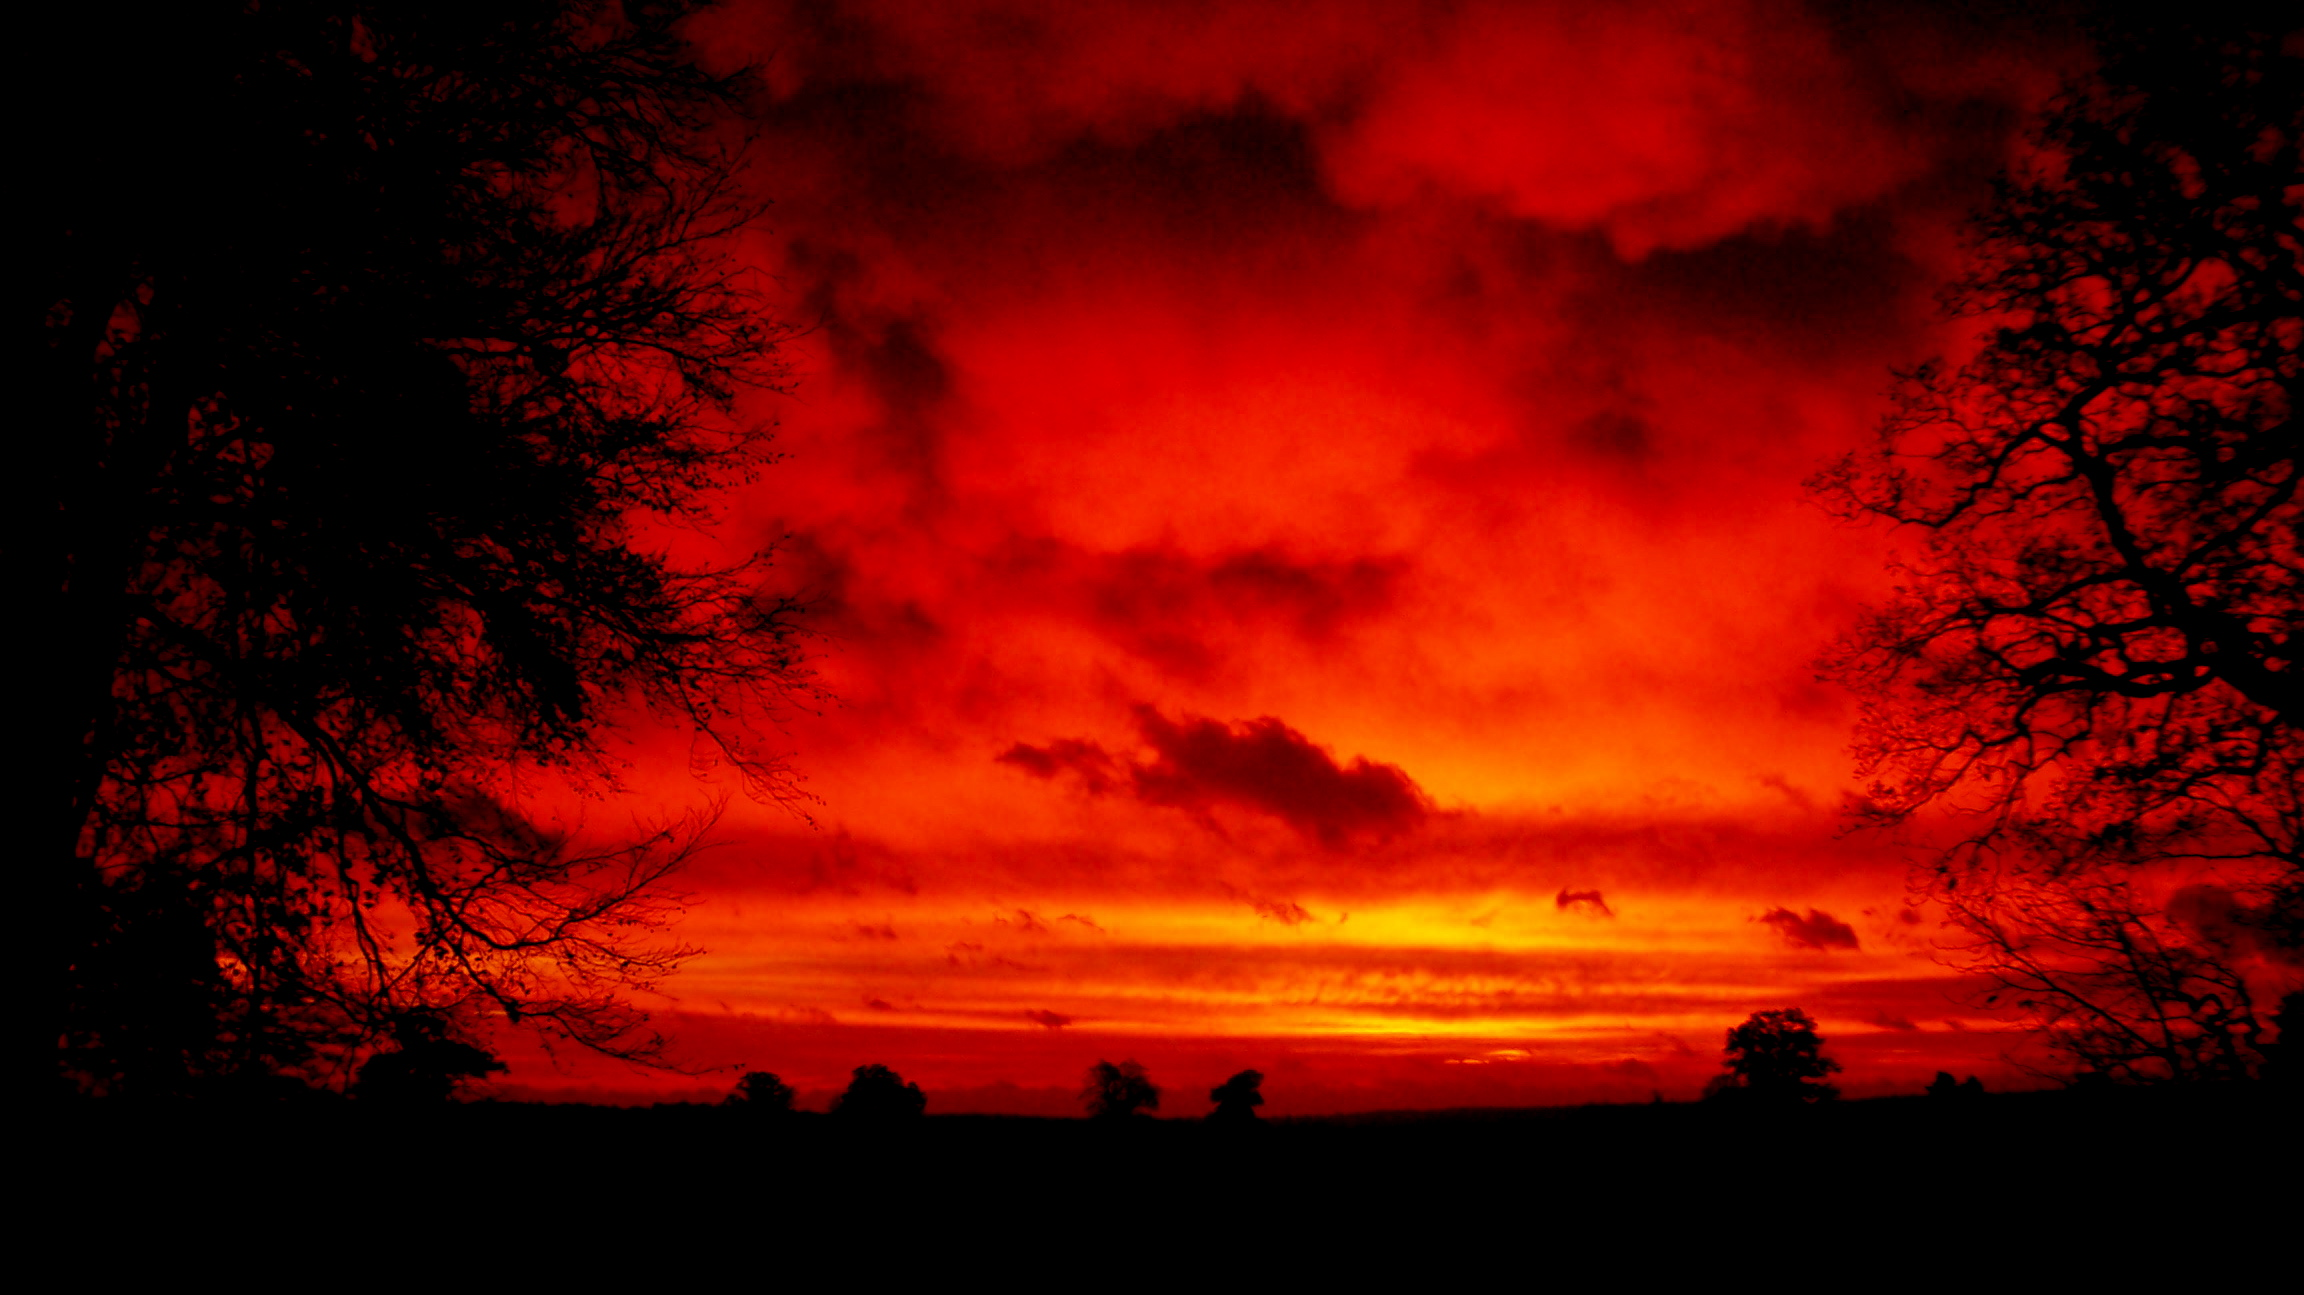 red sky at night sailor s delight red sky in